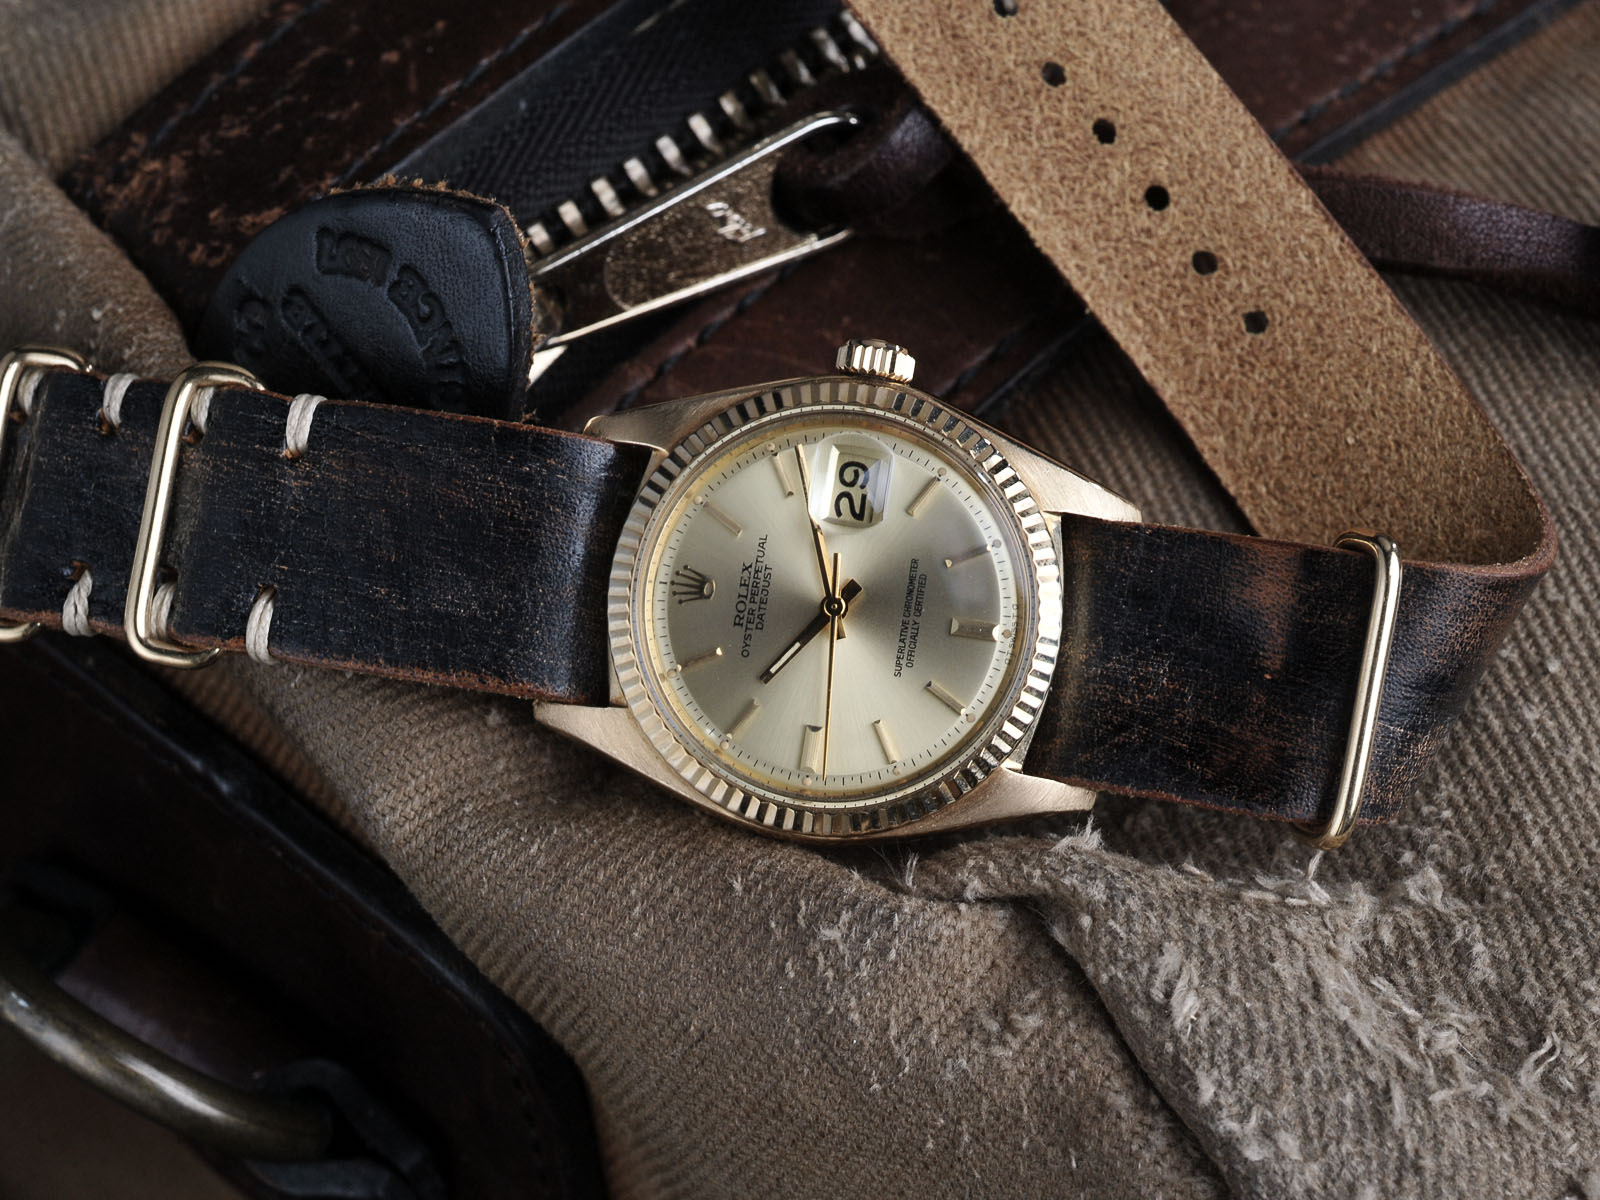 B&S W-44 Rolex Datejust 1603GG 7:14 01